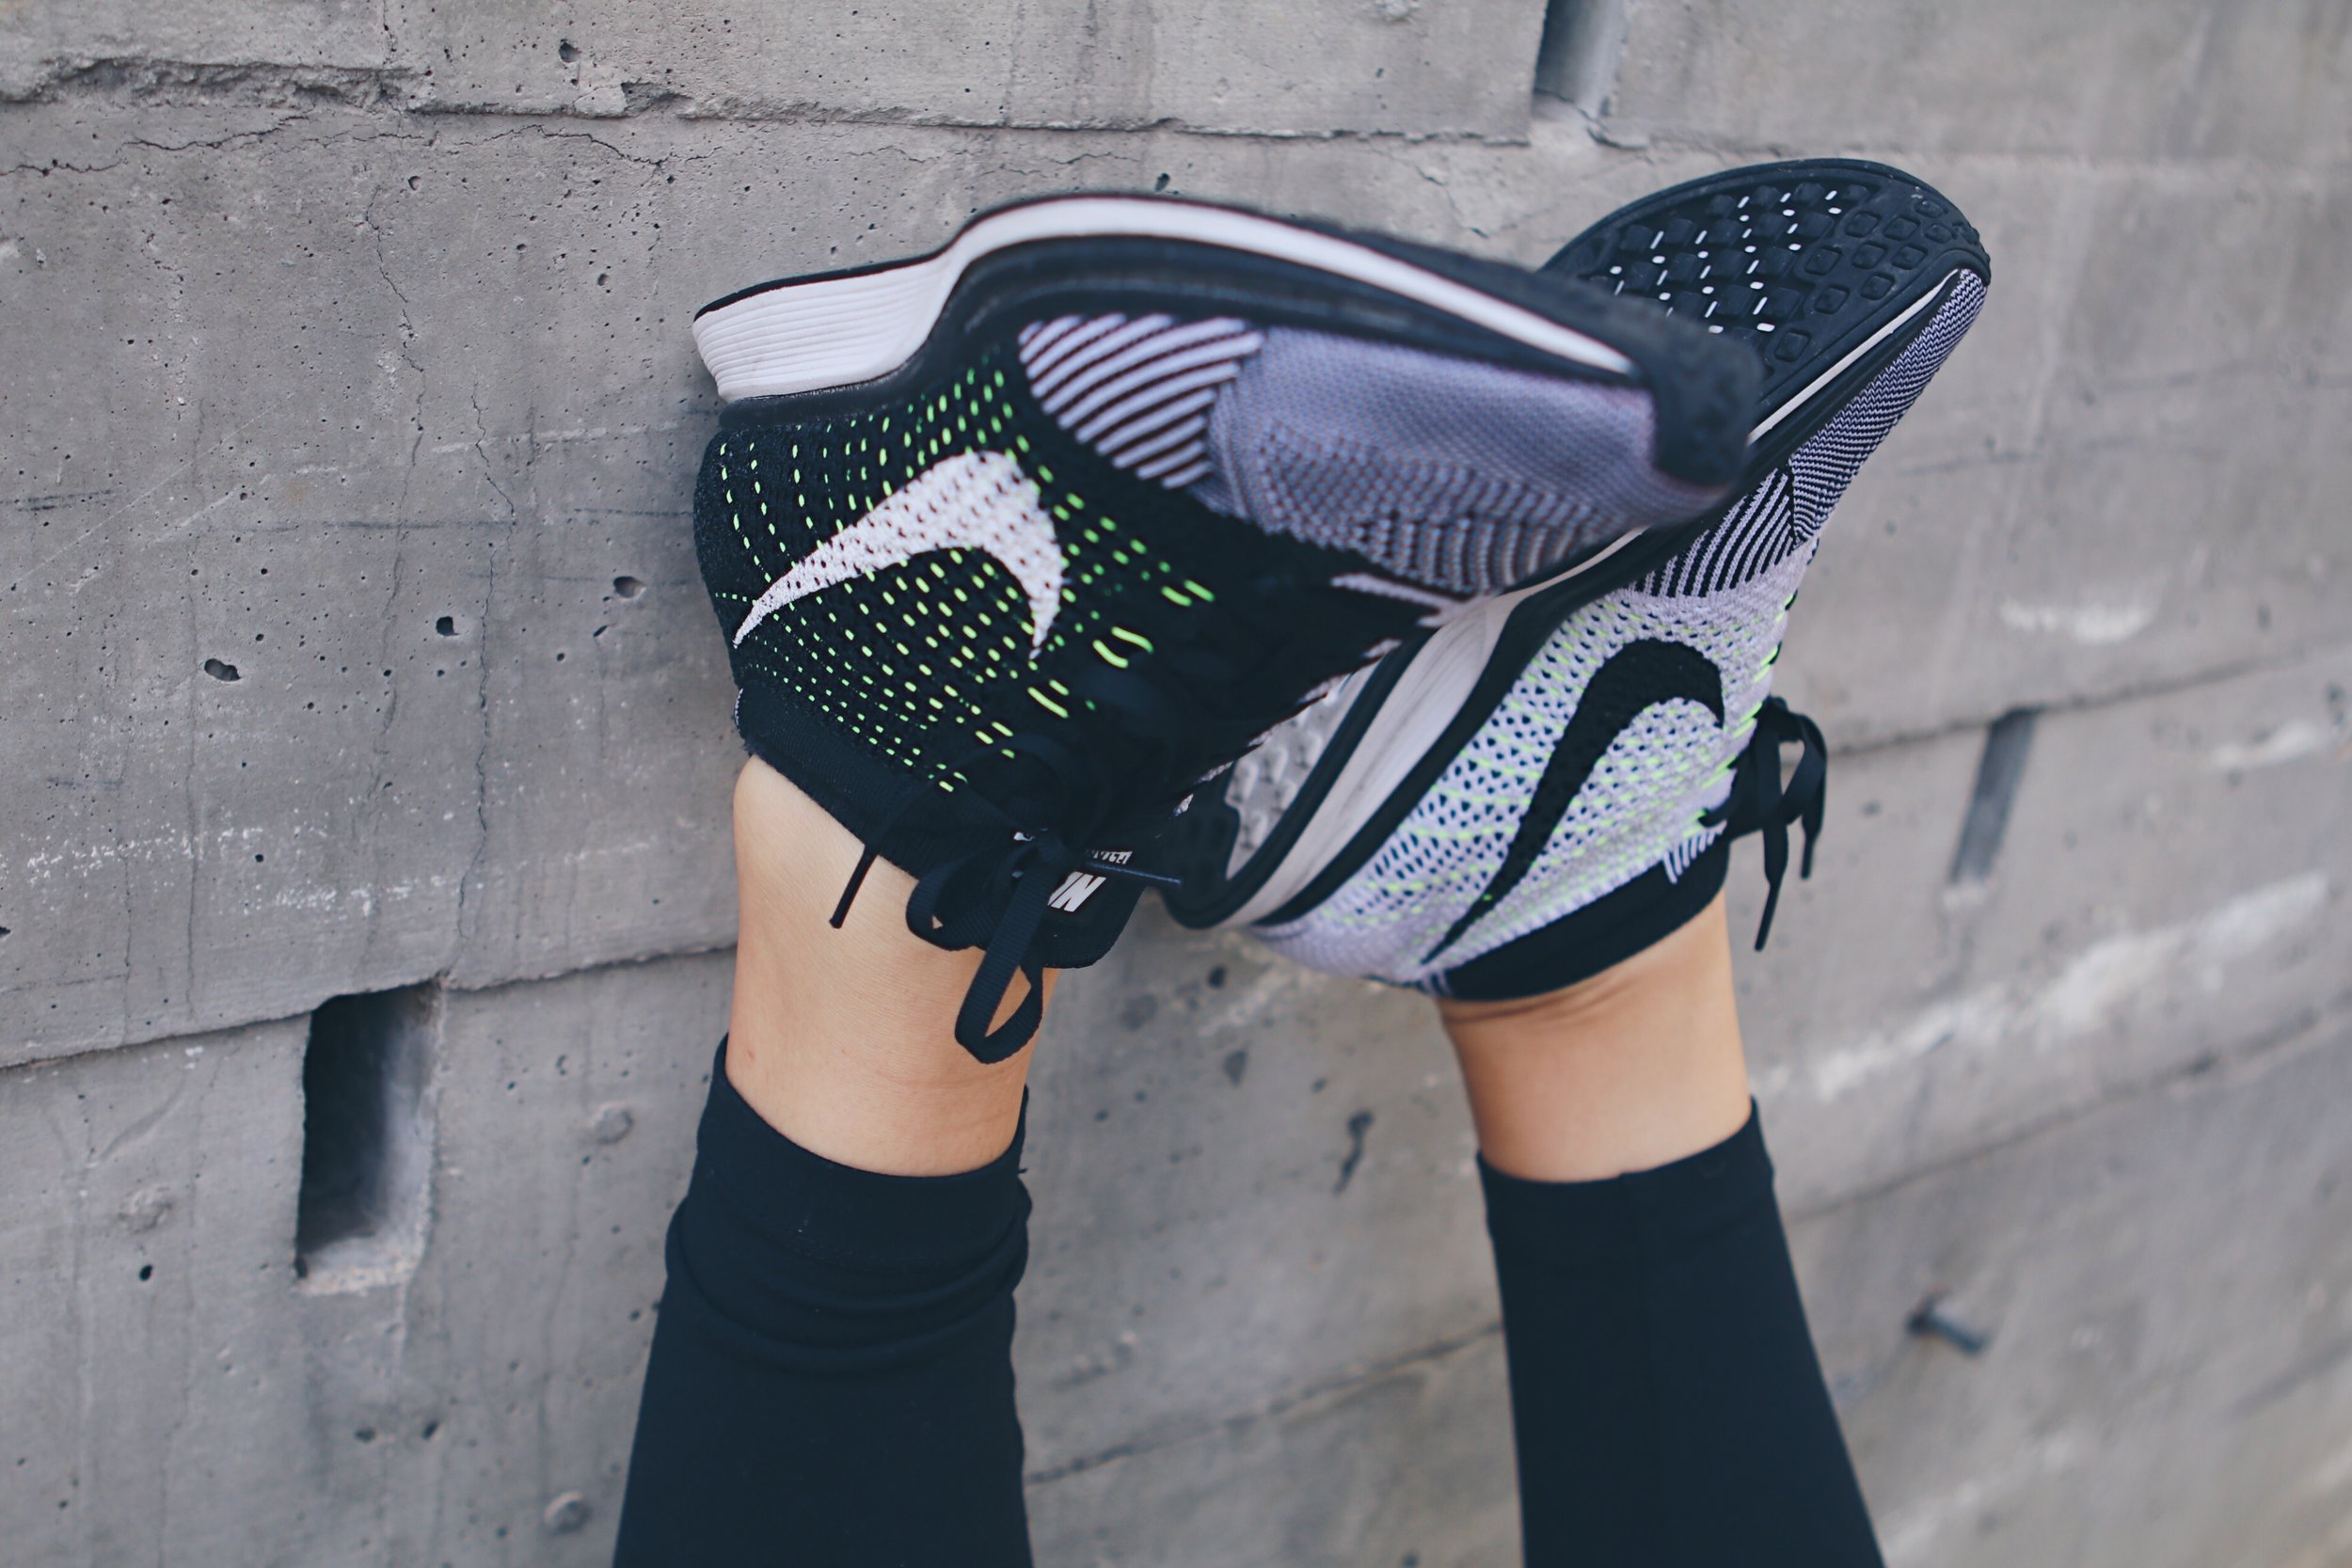 Nike Flyknit Racer - This shoe is light, breathable and suitable for a run or even a long day of adventuring. Pairs with your favorite tights or your favorite denim. ($110-$150)